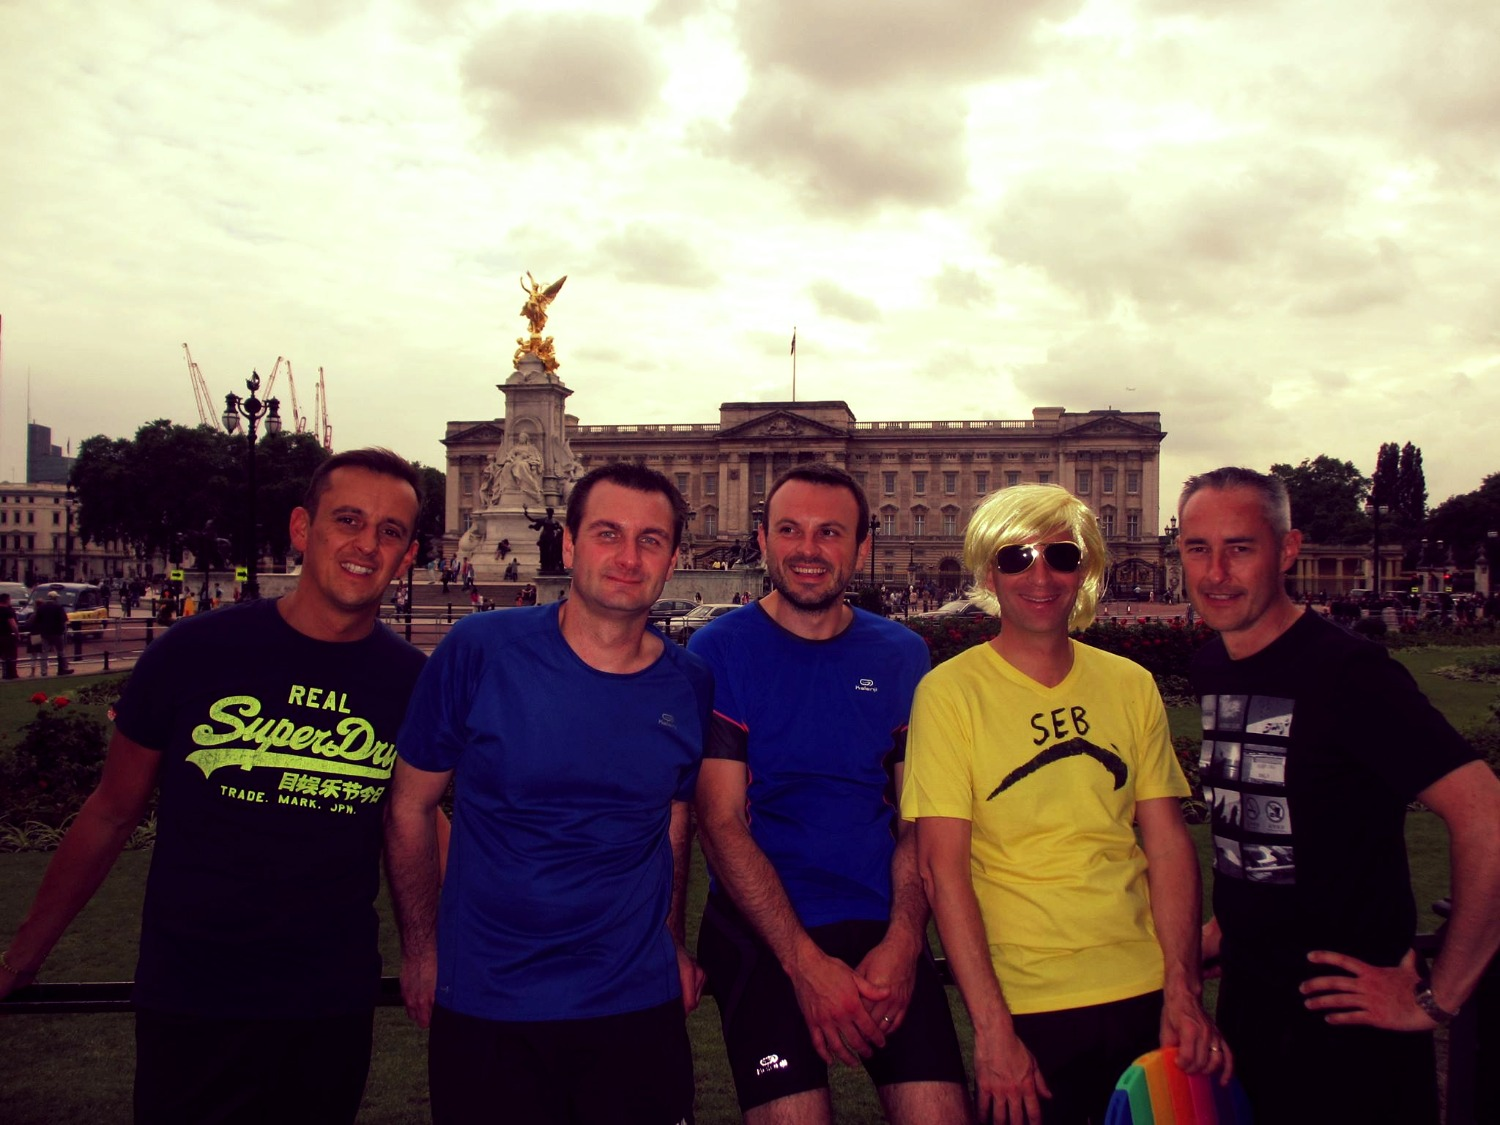 Runners visiting Buckingham Palace